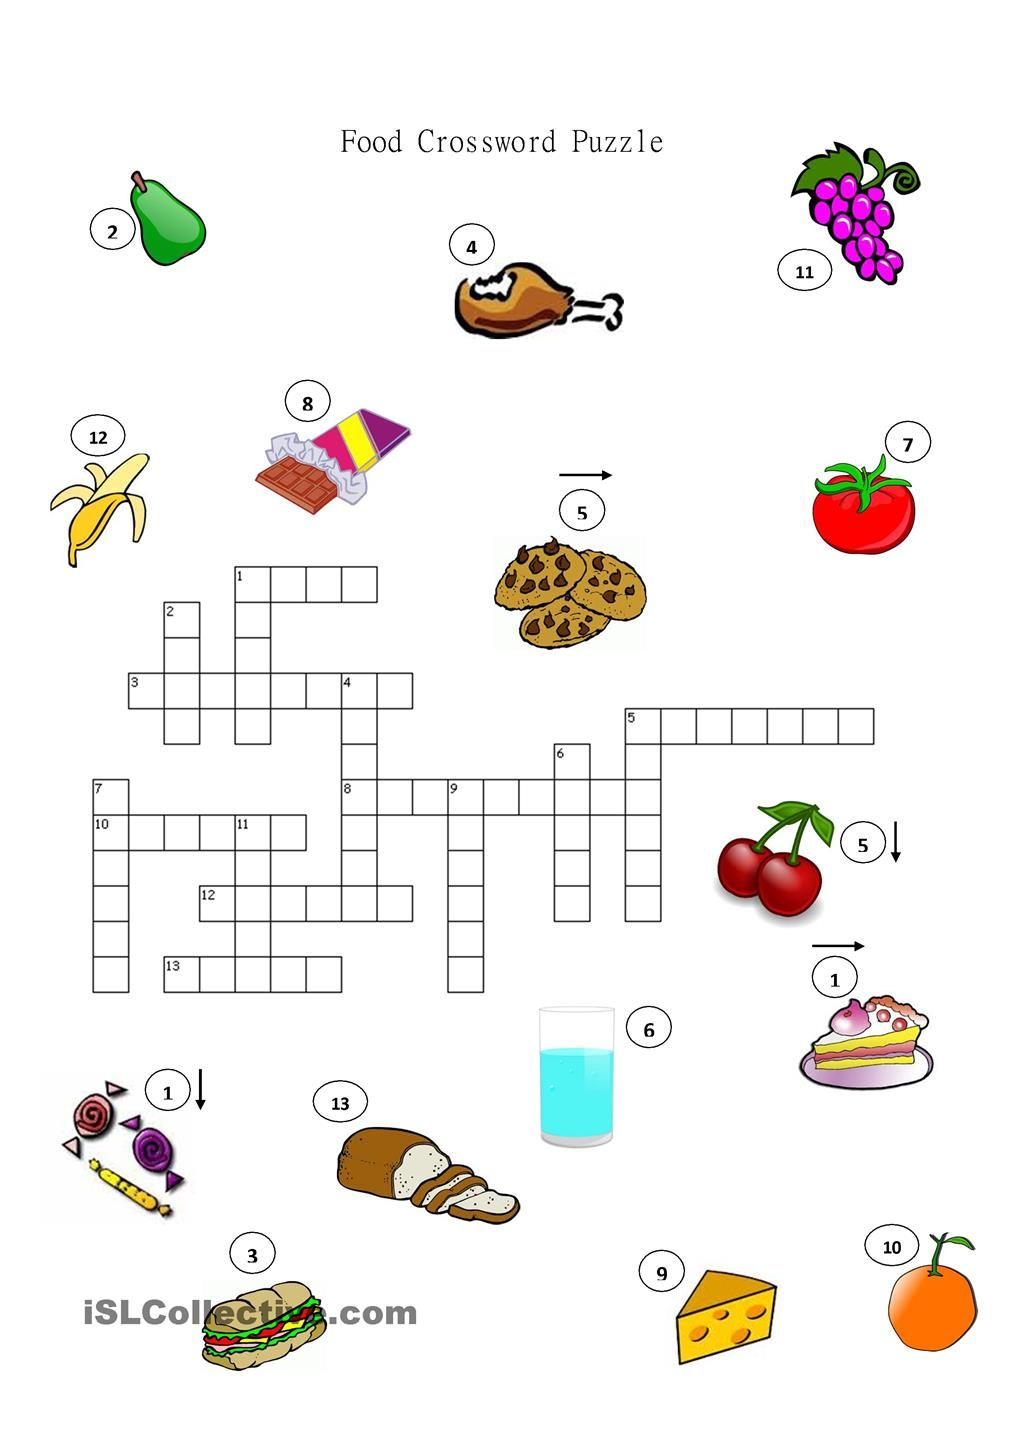 worksheet English Language Puzzles Worksheets food crossword puzzle ingles pinterest english worksheets and puzzlesprintable worksheetsteaching materialsenglish languageeslenglish